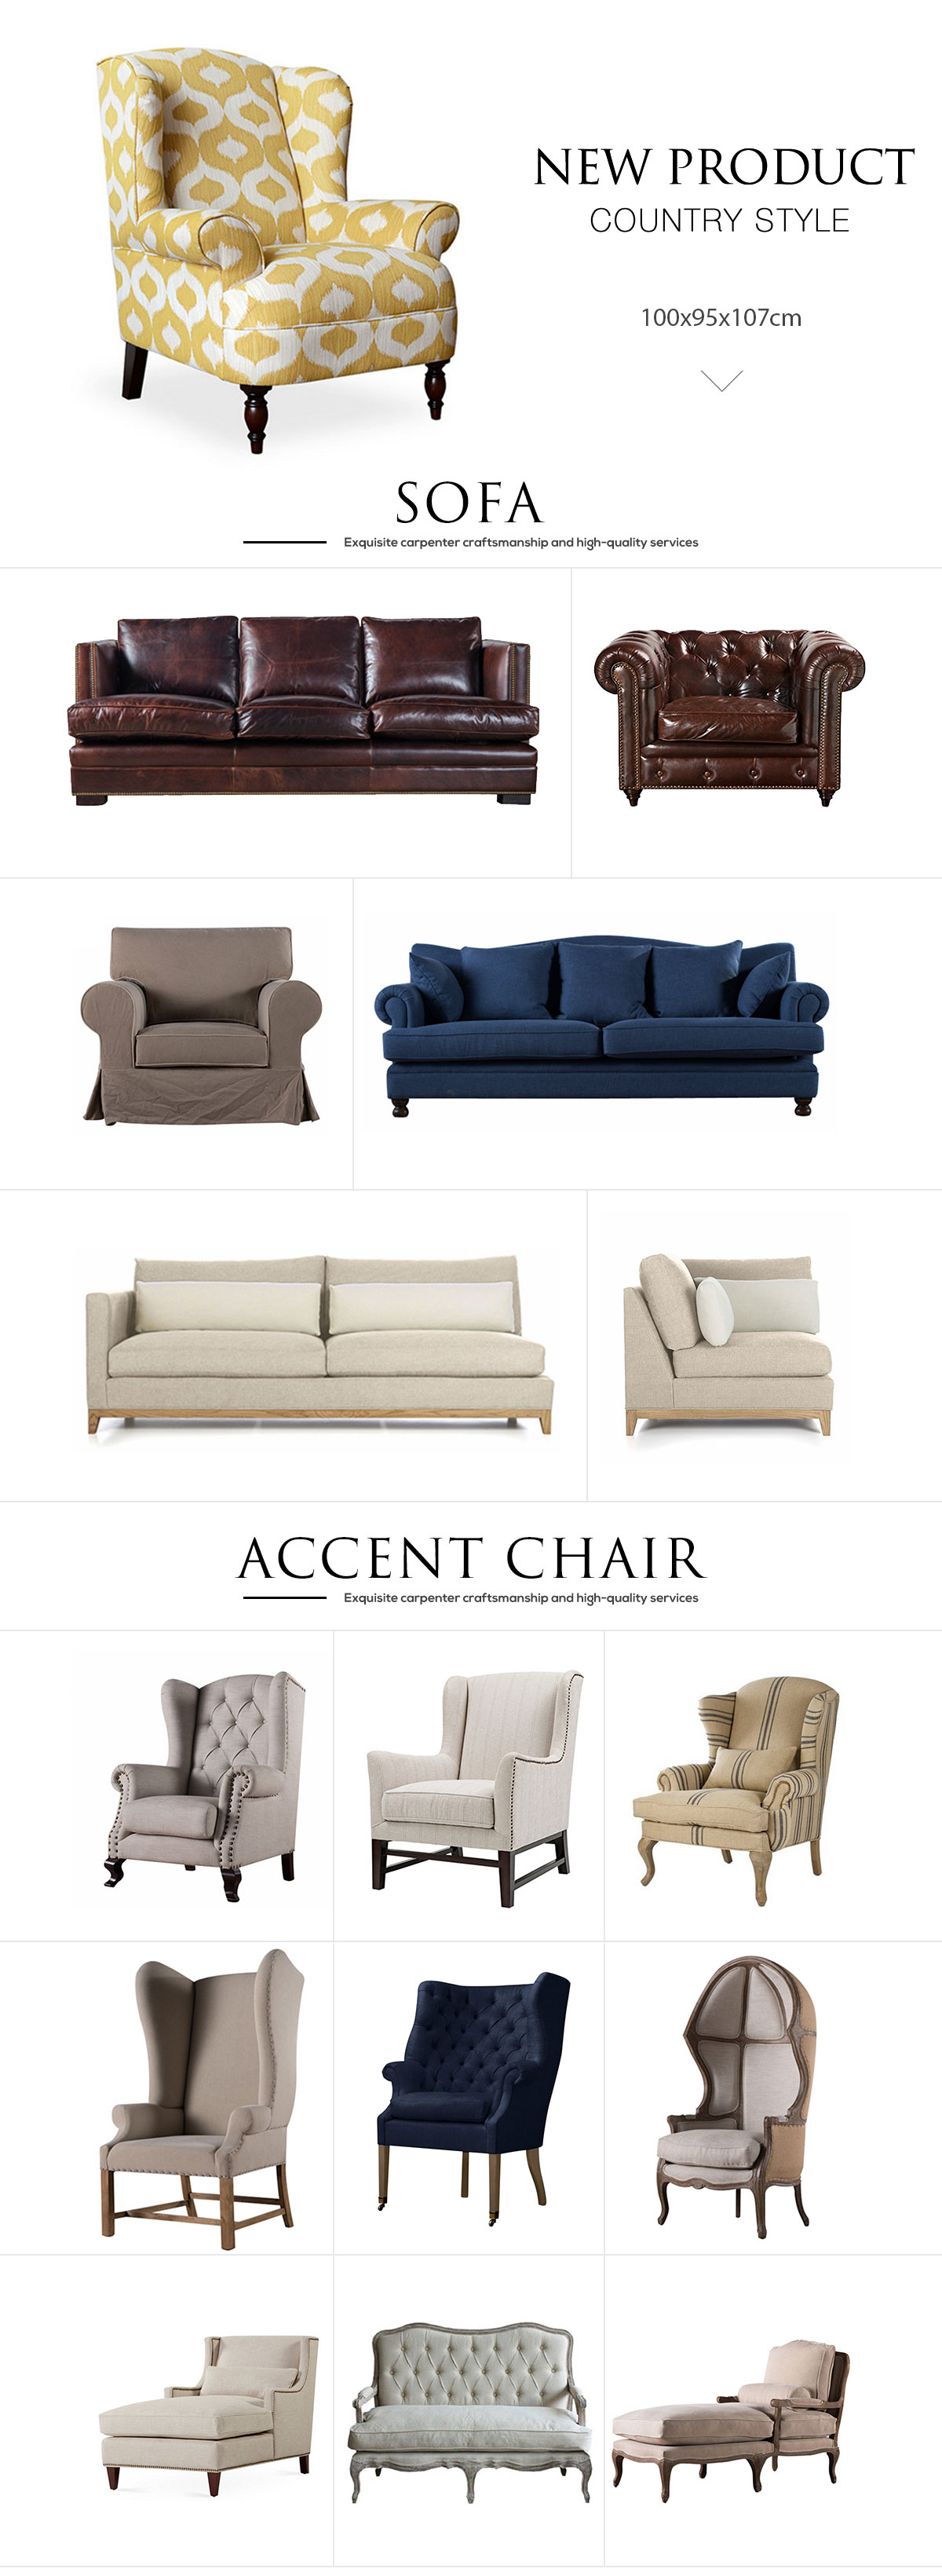 Hangzhou Prime Home Co., Ltd. - Furniture, Dining chair and table